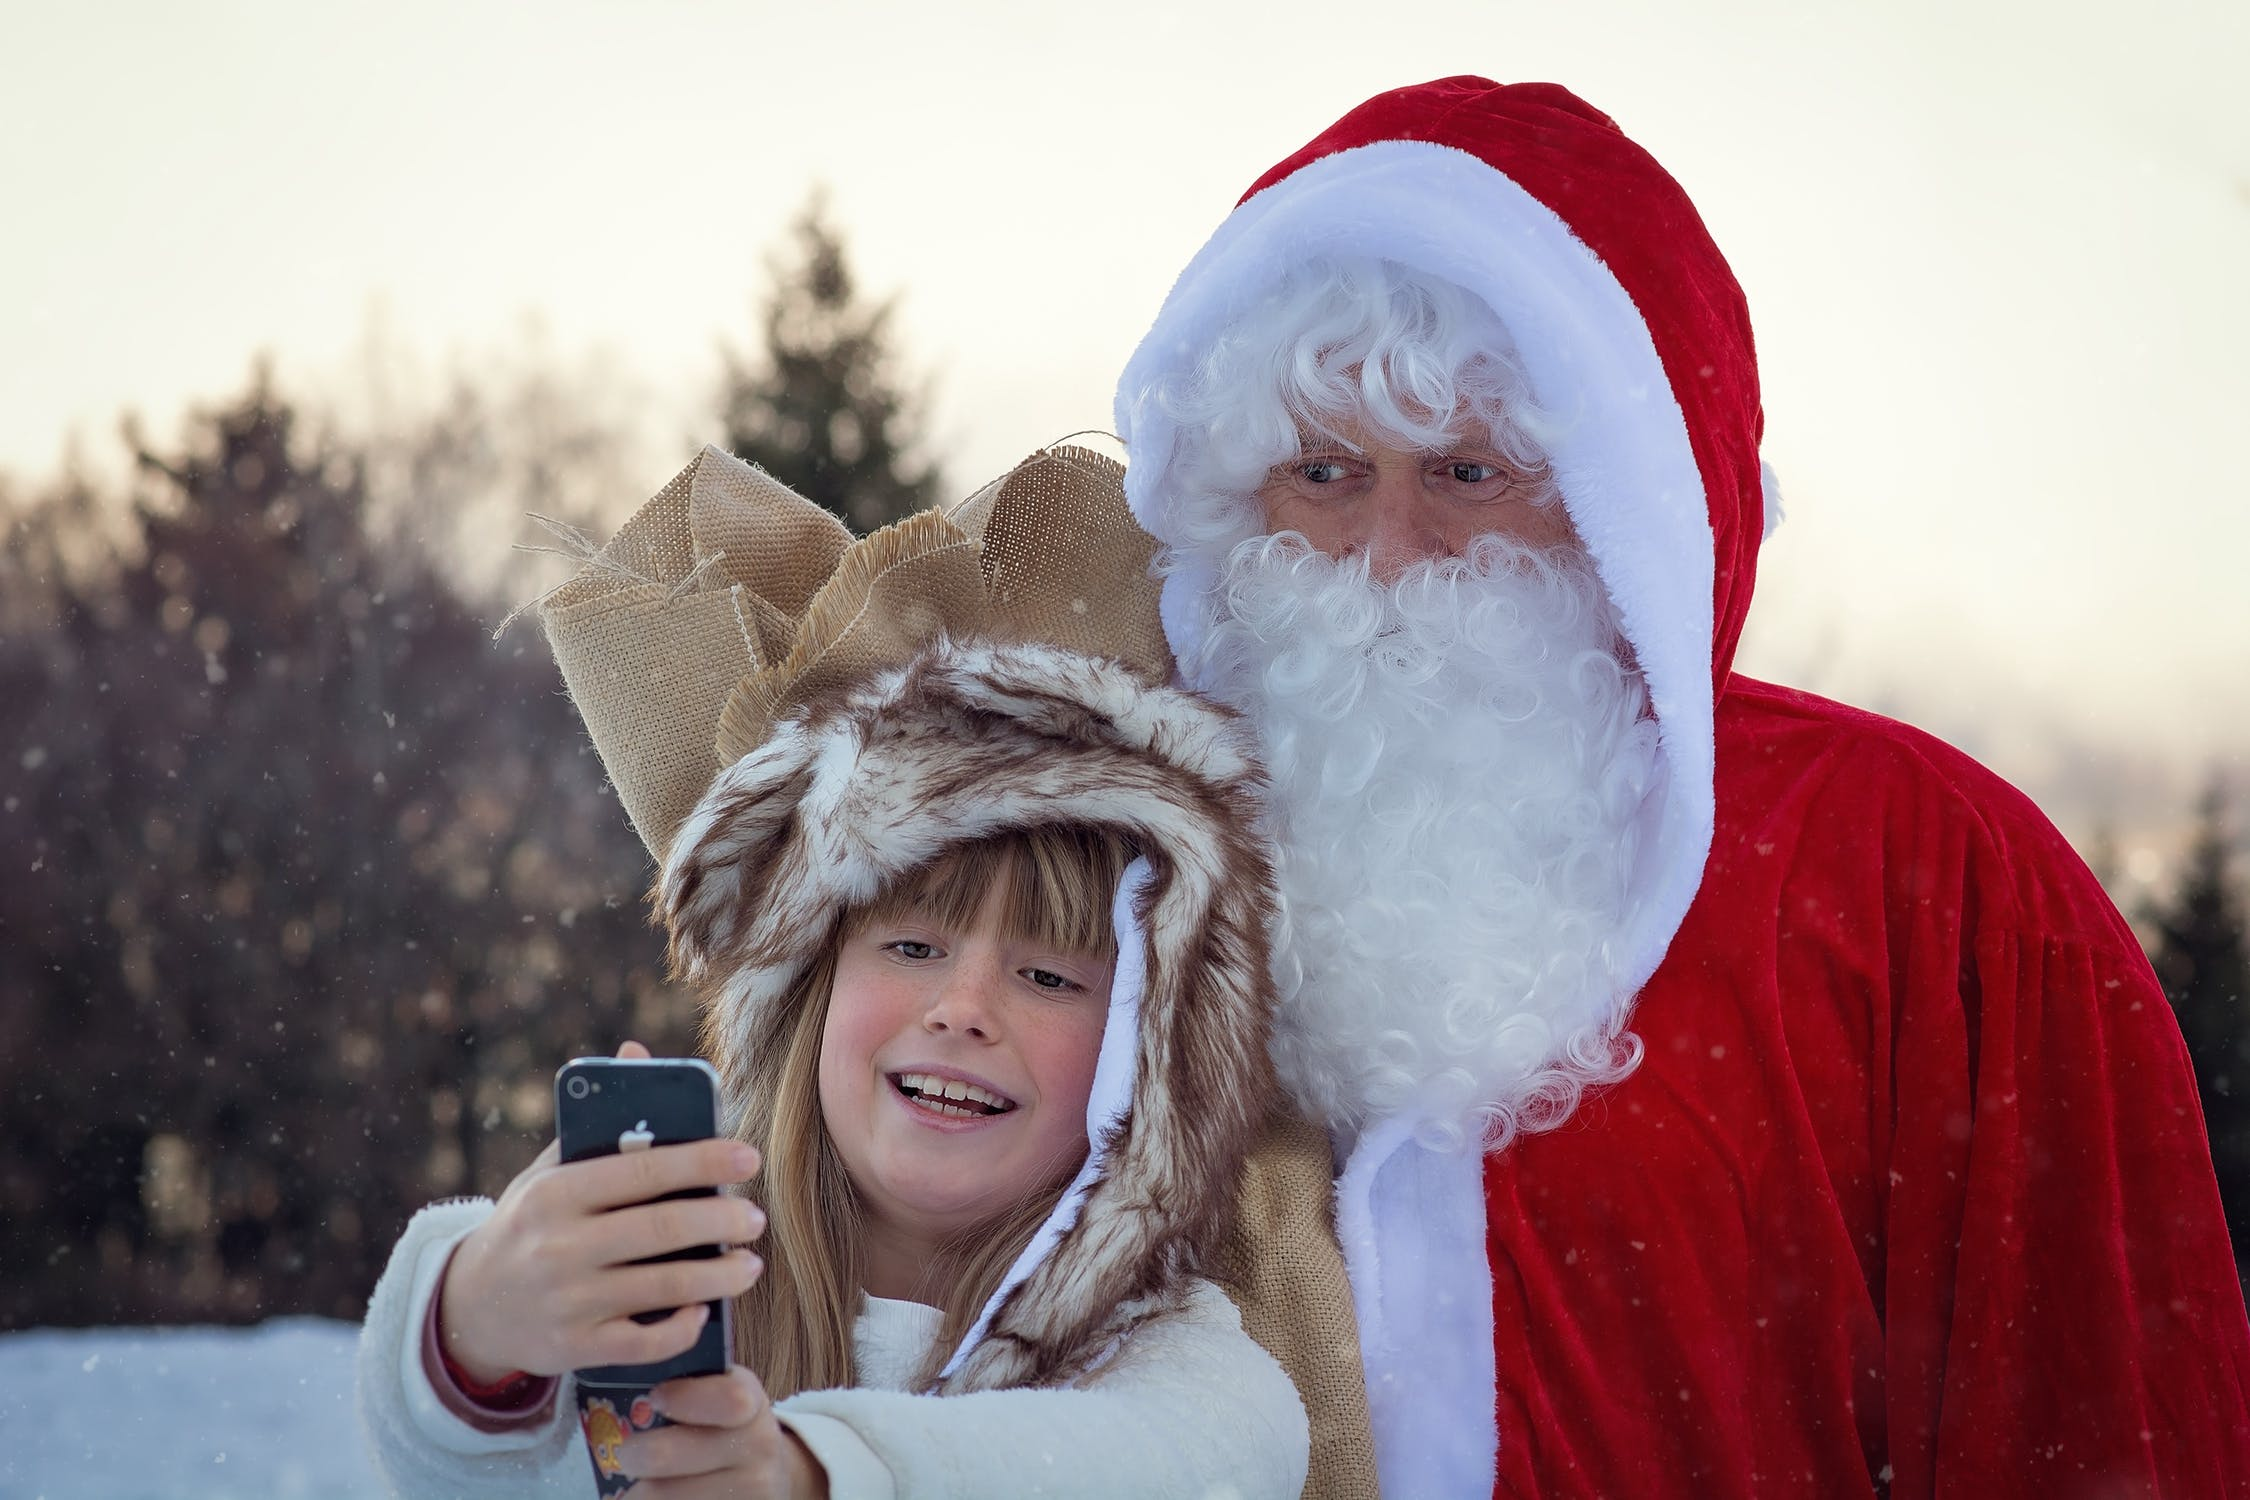 Family photo ideas to try out this Christmas